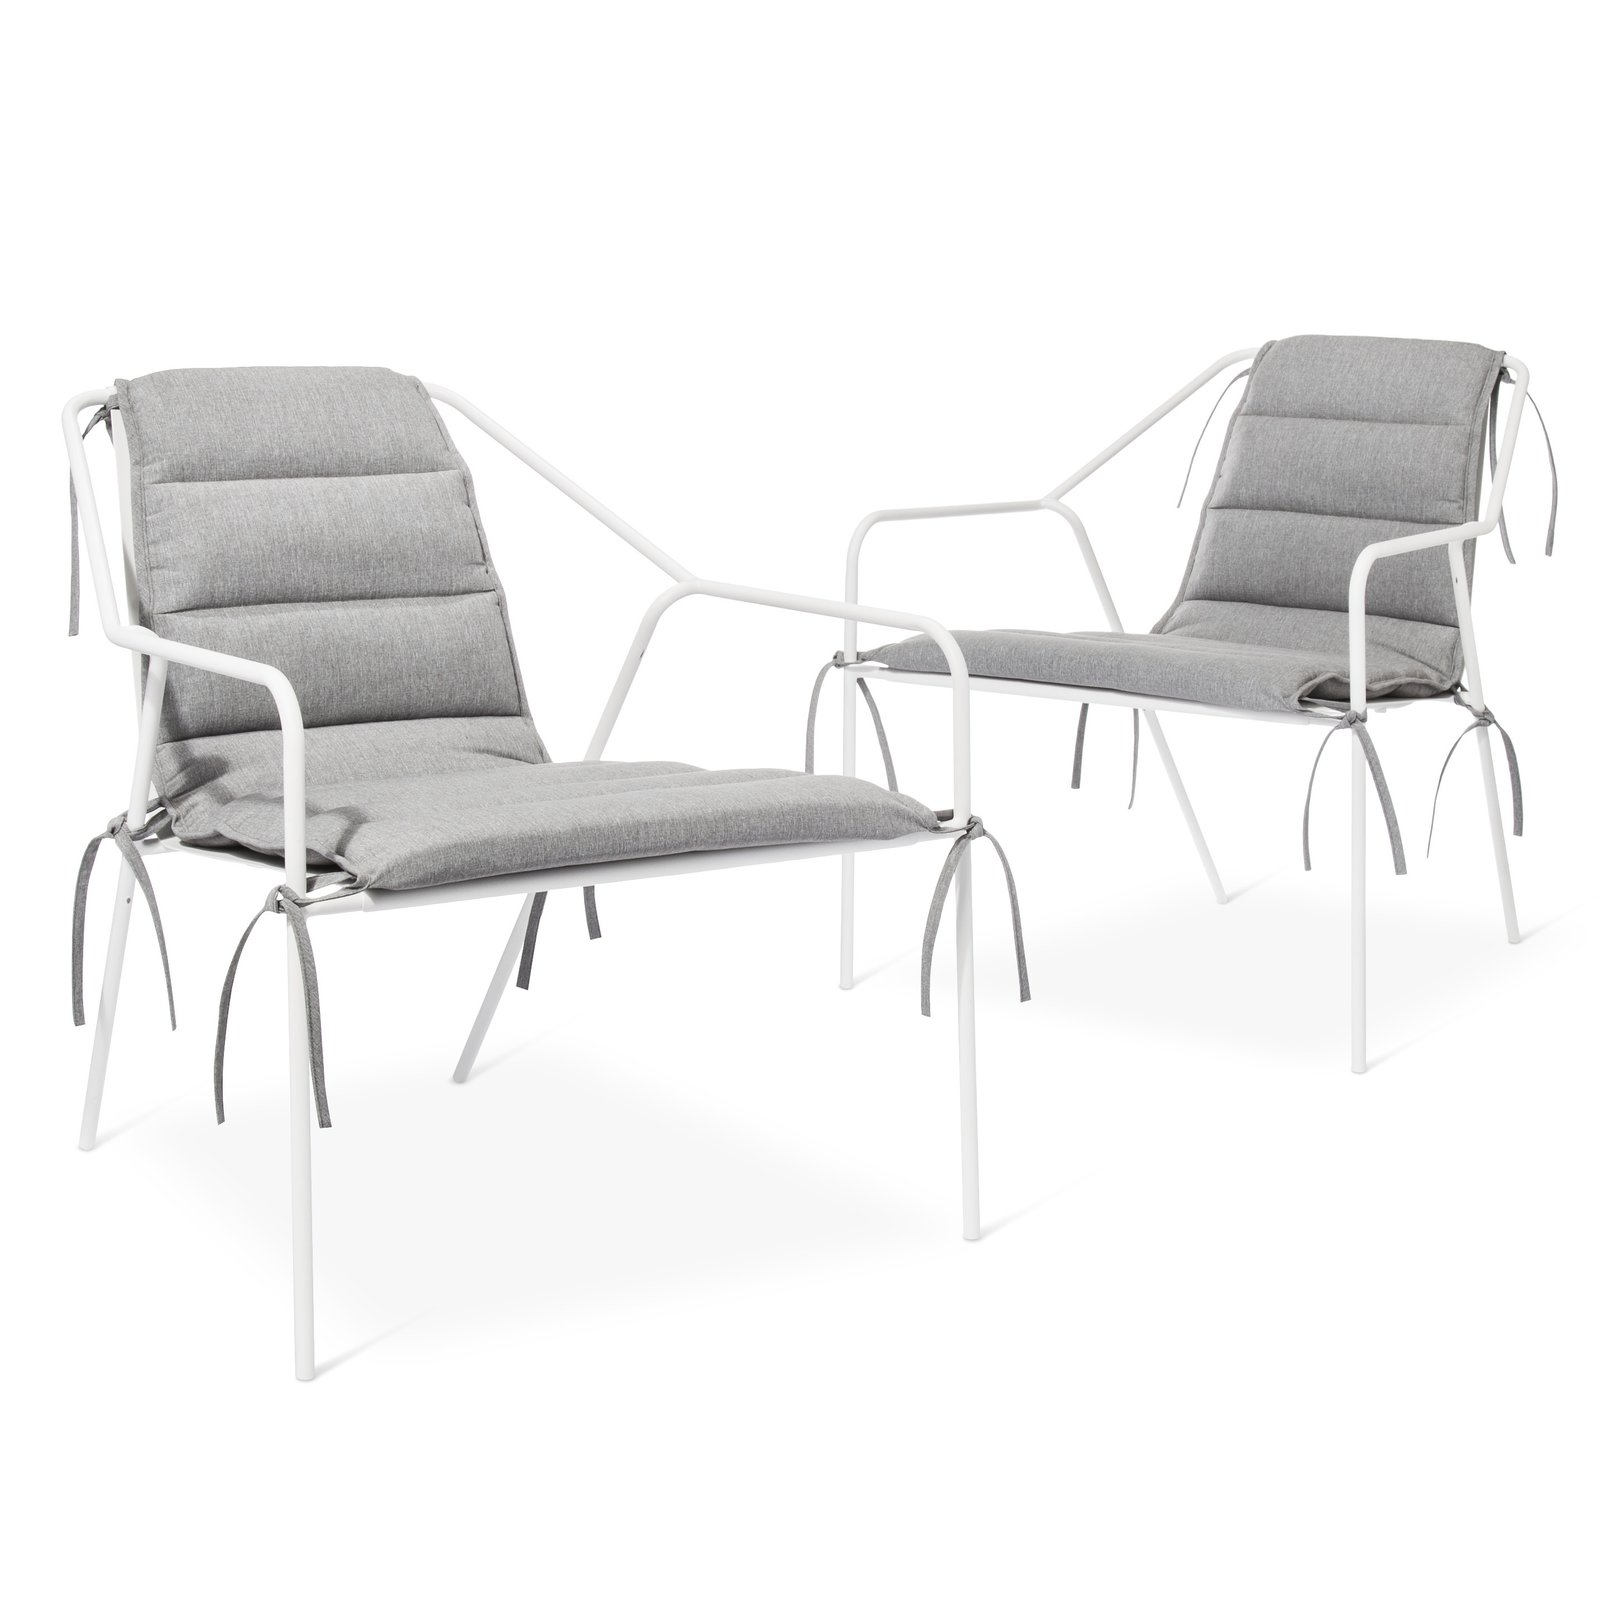 White Outdoor Lounge Chair Modern By Dwell Magazine Outdoor Collection Dwell